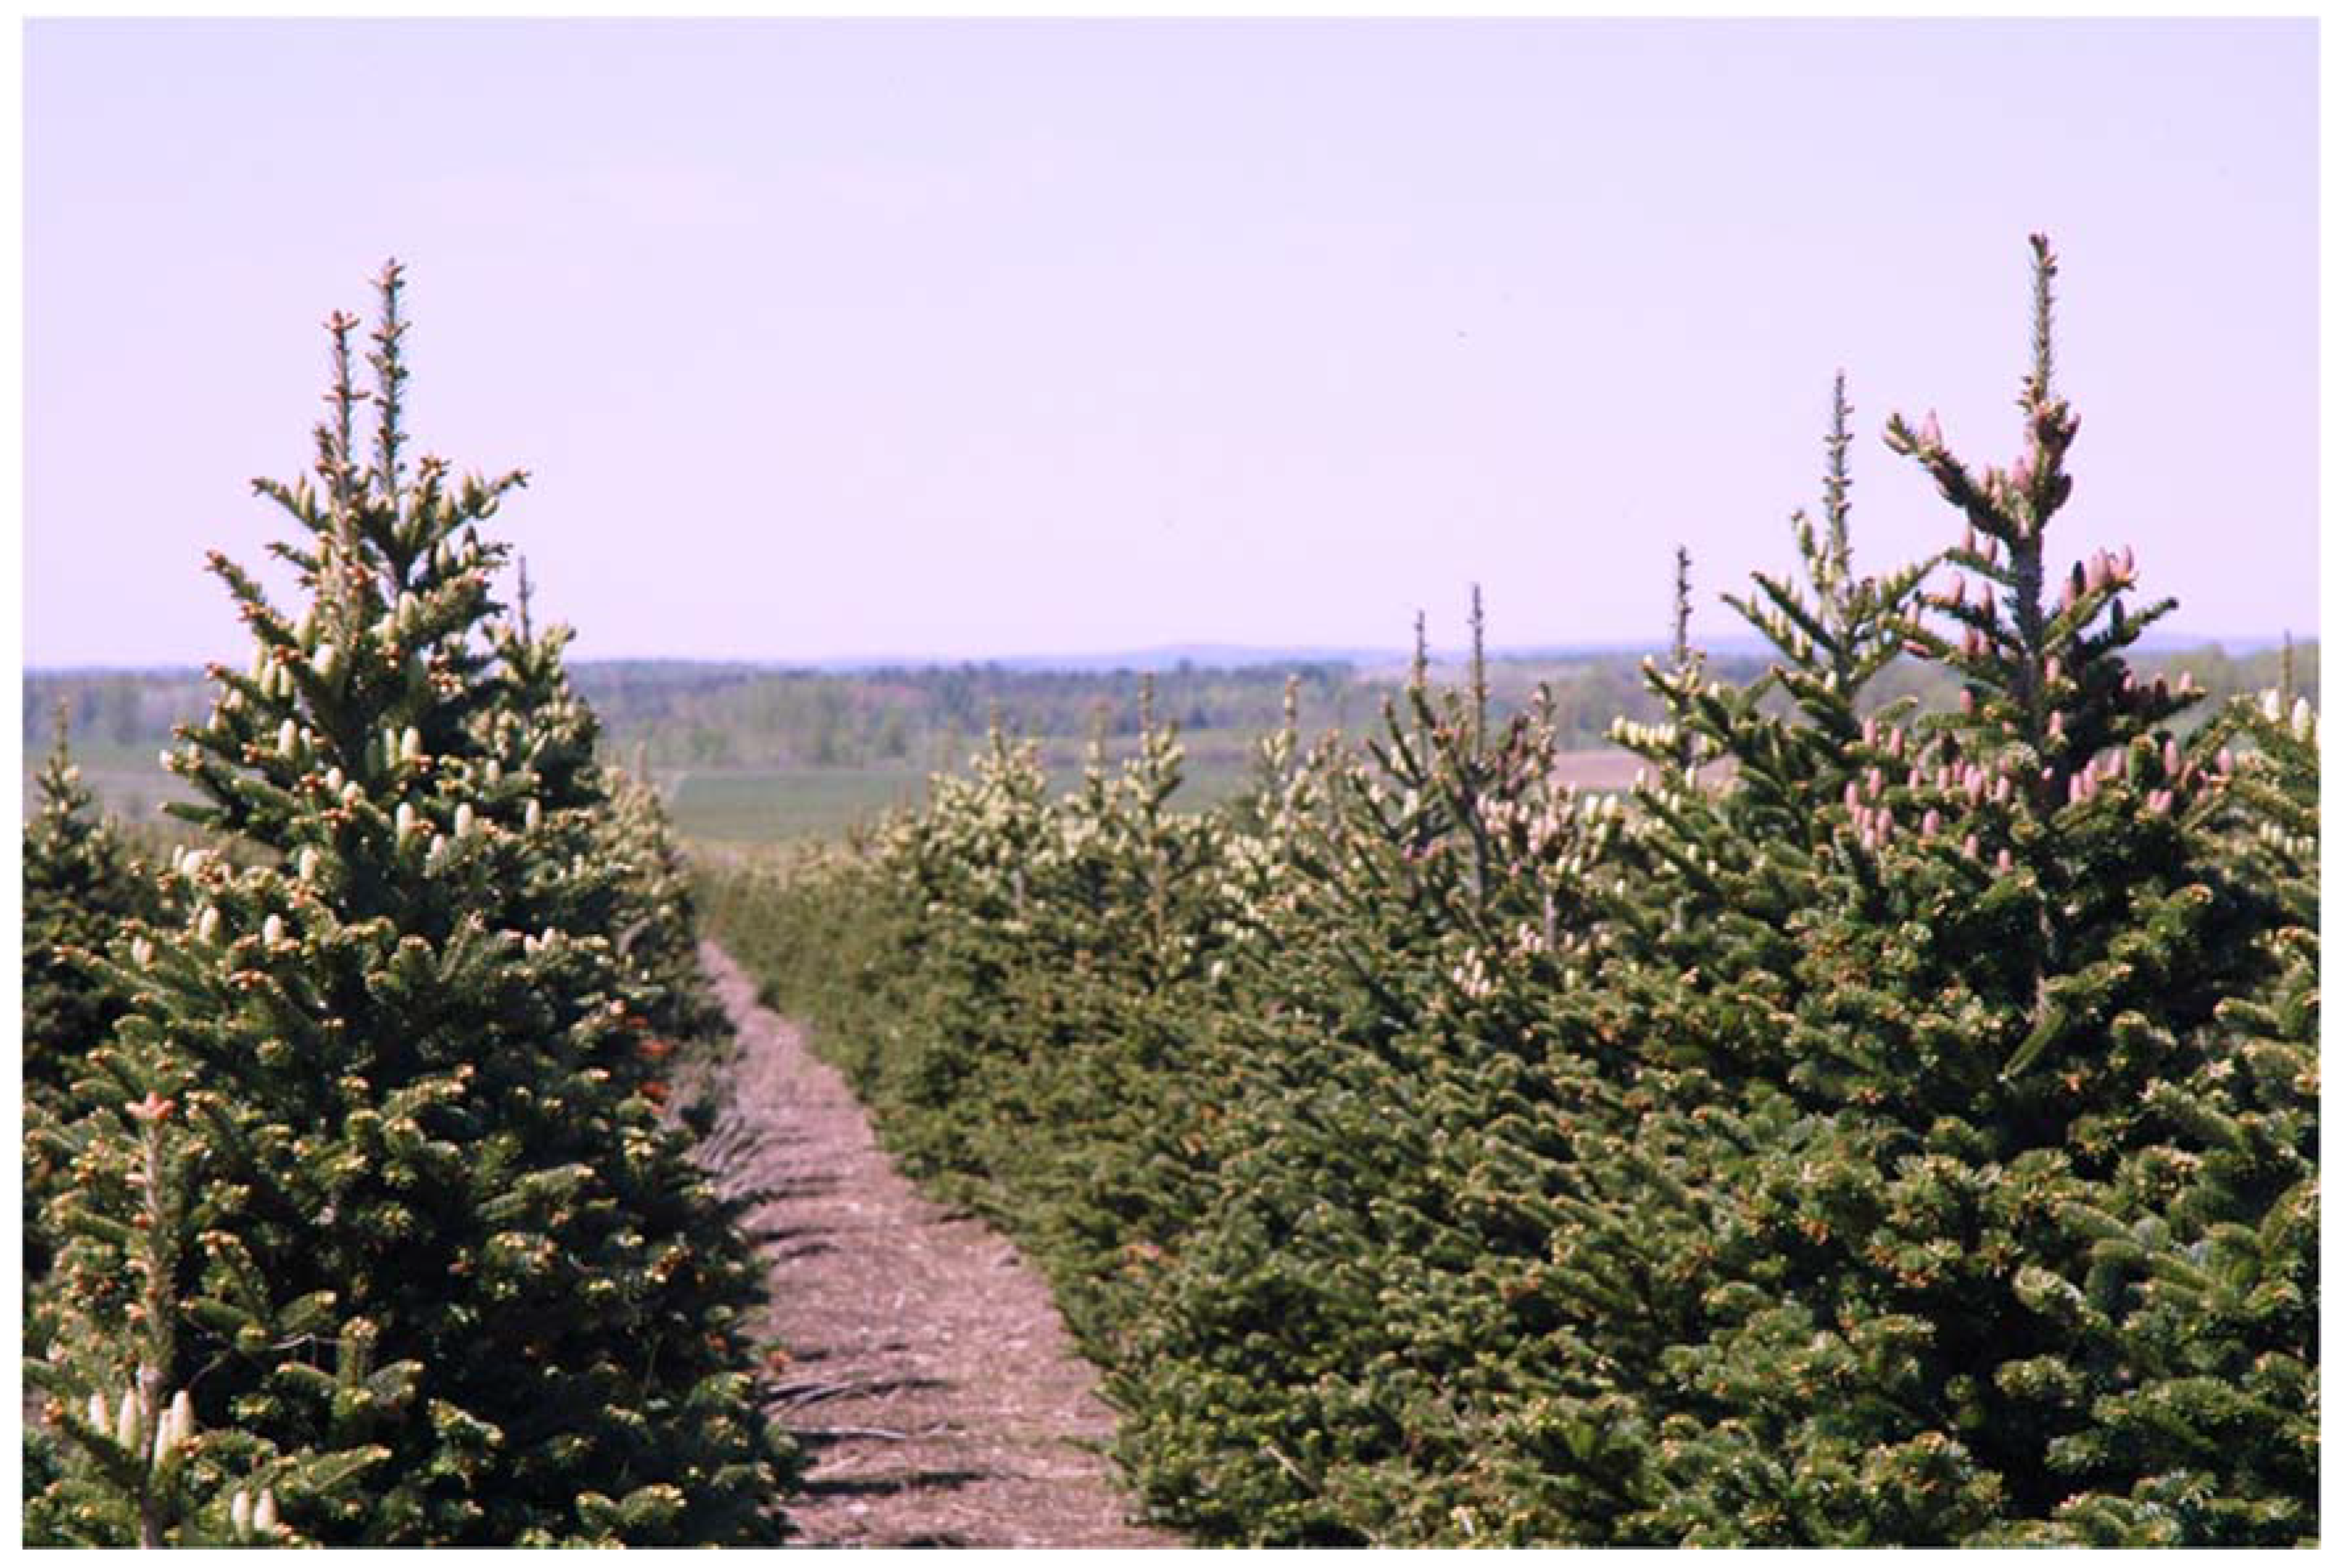 Fraser Fir Christmas Trees.Forests Free Full Text Post Emergent Control Of Nuisance